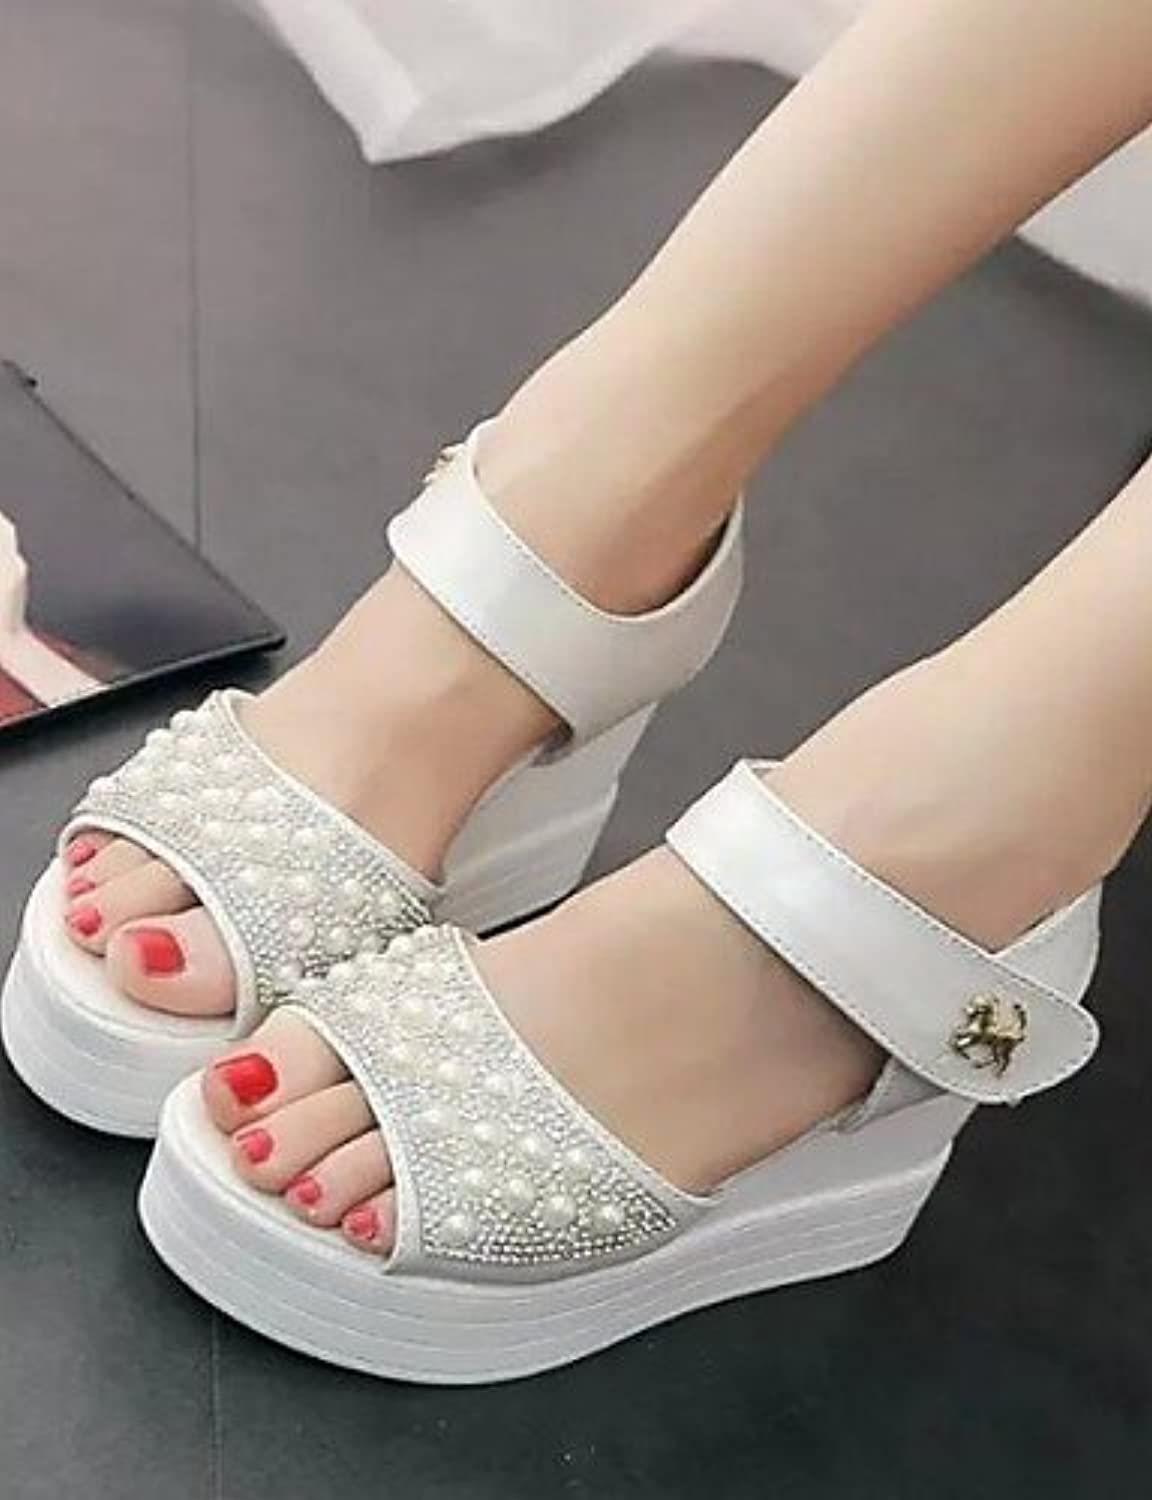 01f01184fd1e ShangYi Women s Shoes Shoes Shoes Pearl Magic Tape All Match Wedge Heel  Comfort Sandals Dress White   Silver Parent B01G07HSHY 21d444